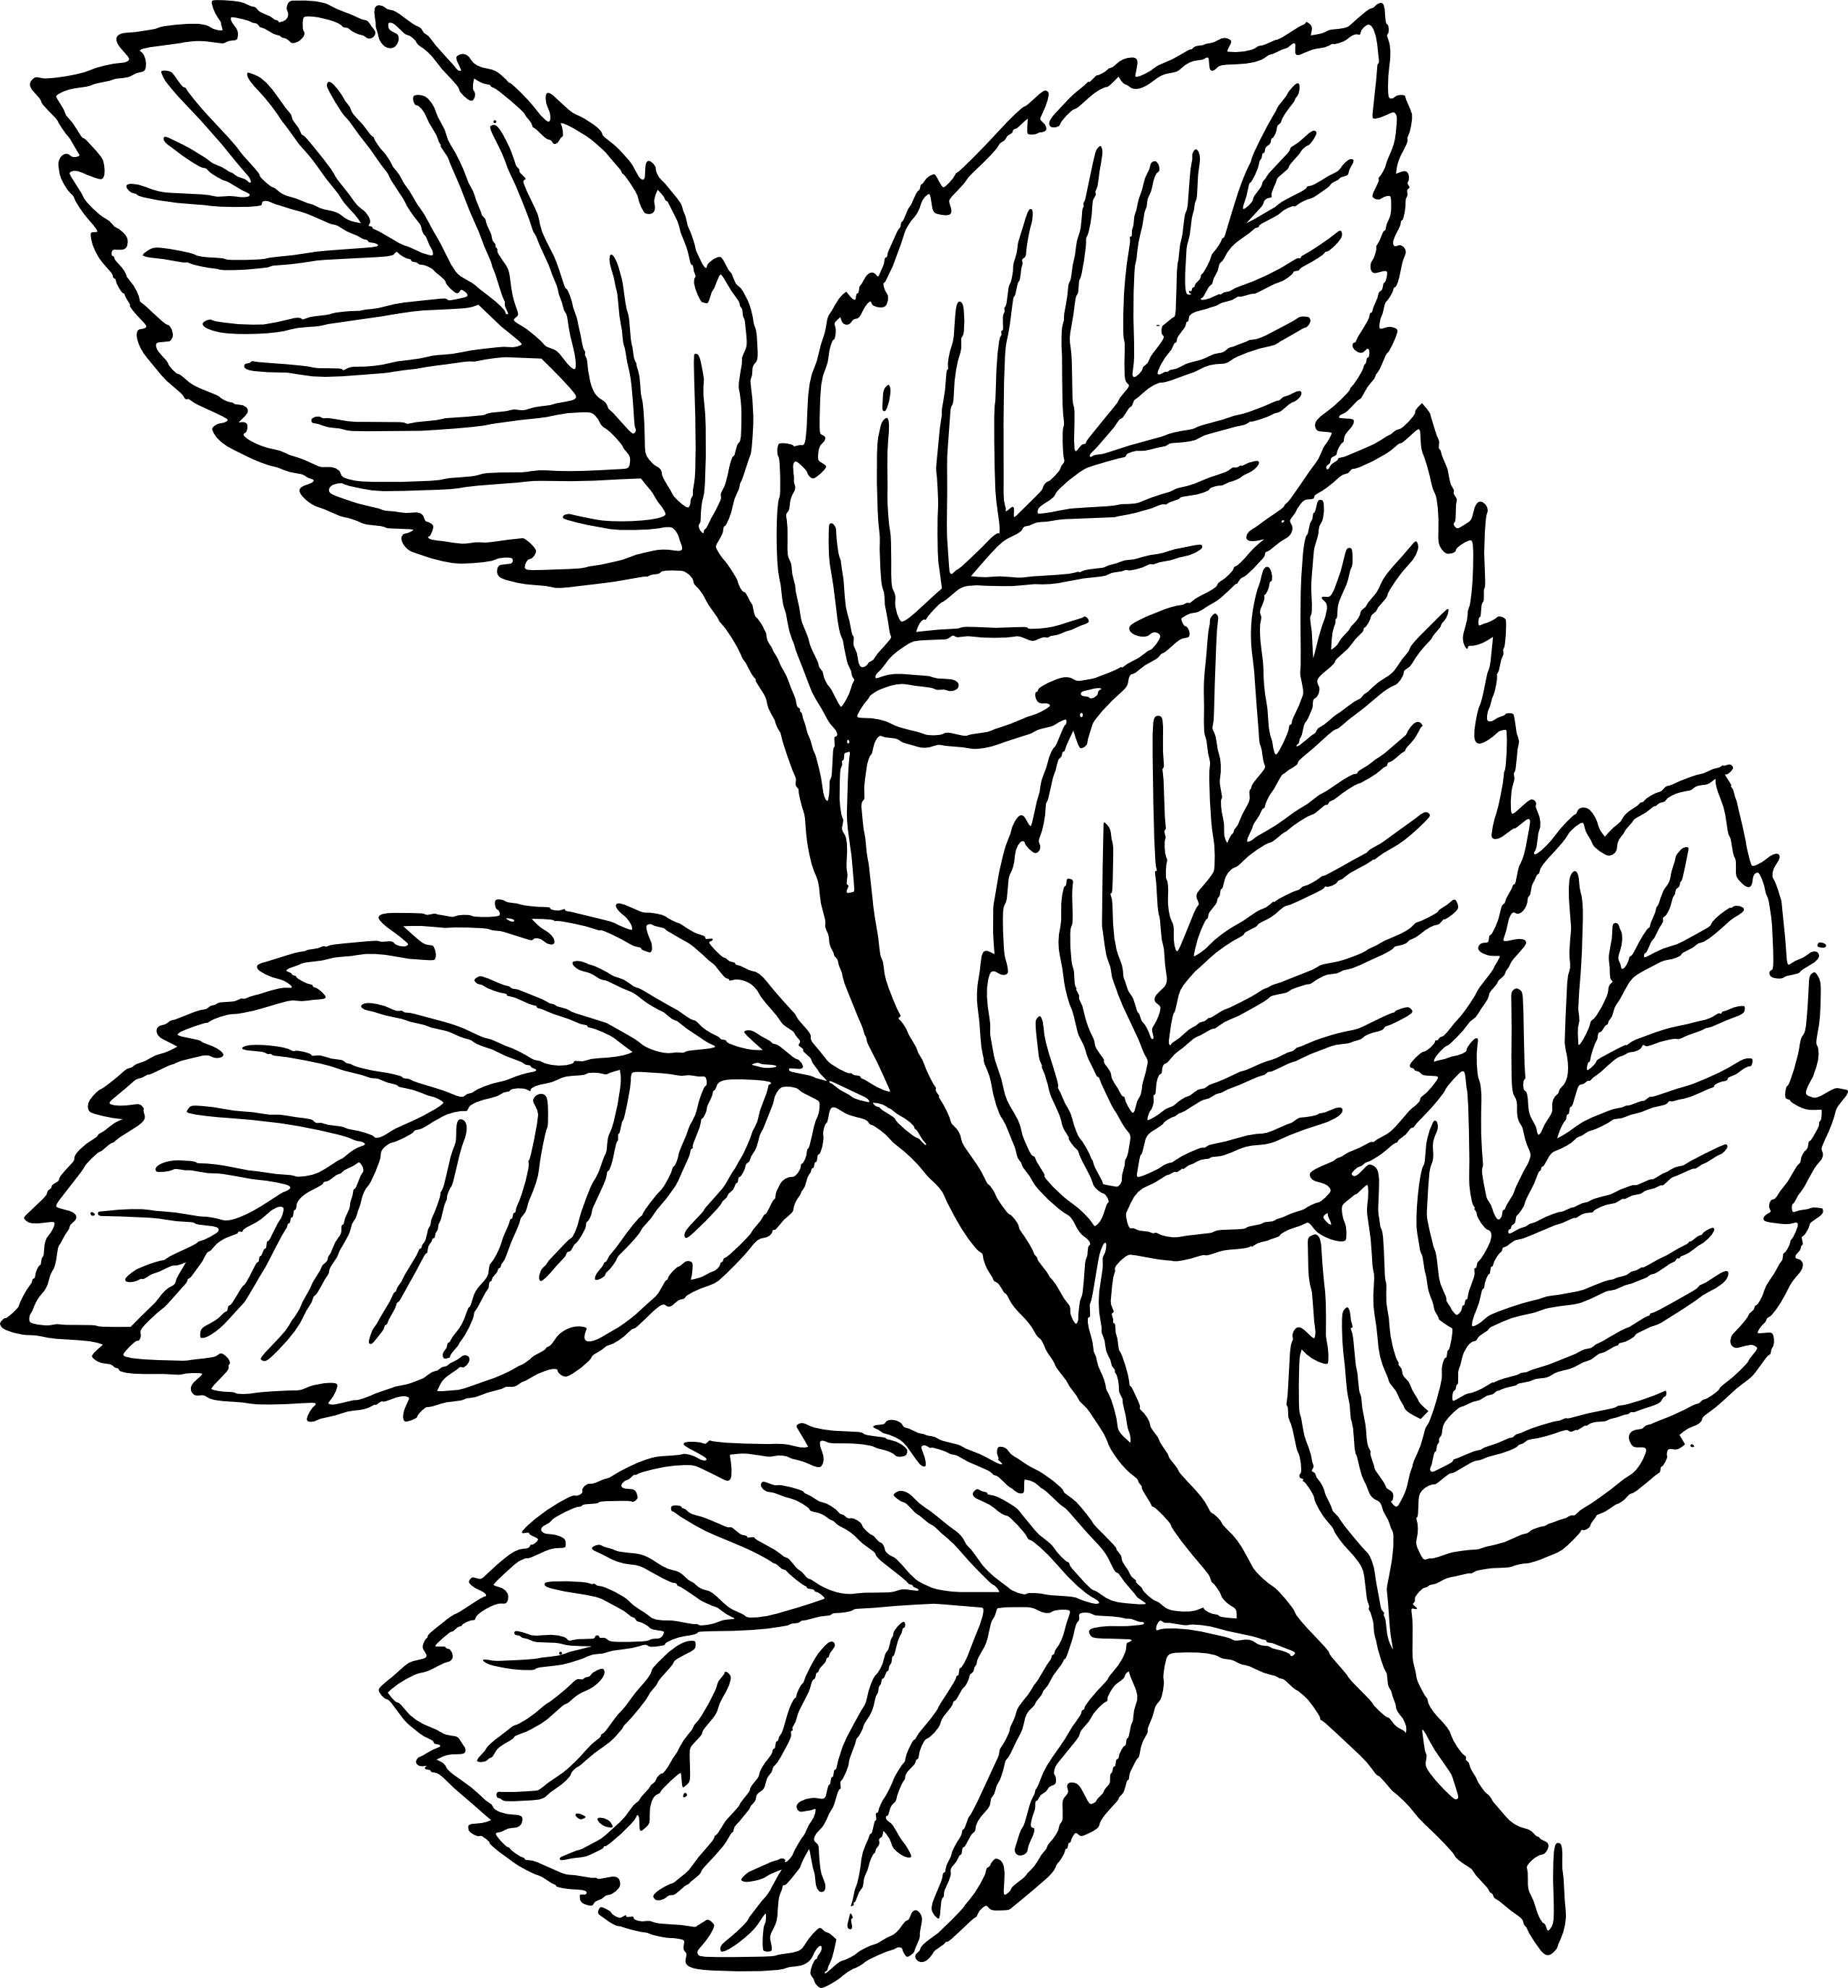 Black walnut leaf clipart black and white png black and white library Fall Leaf Clipart Black And White | Clipart Panda - Free Clipart Images png black and white library